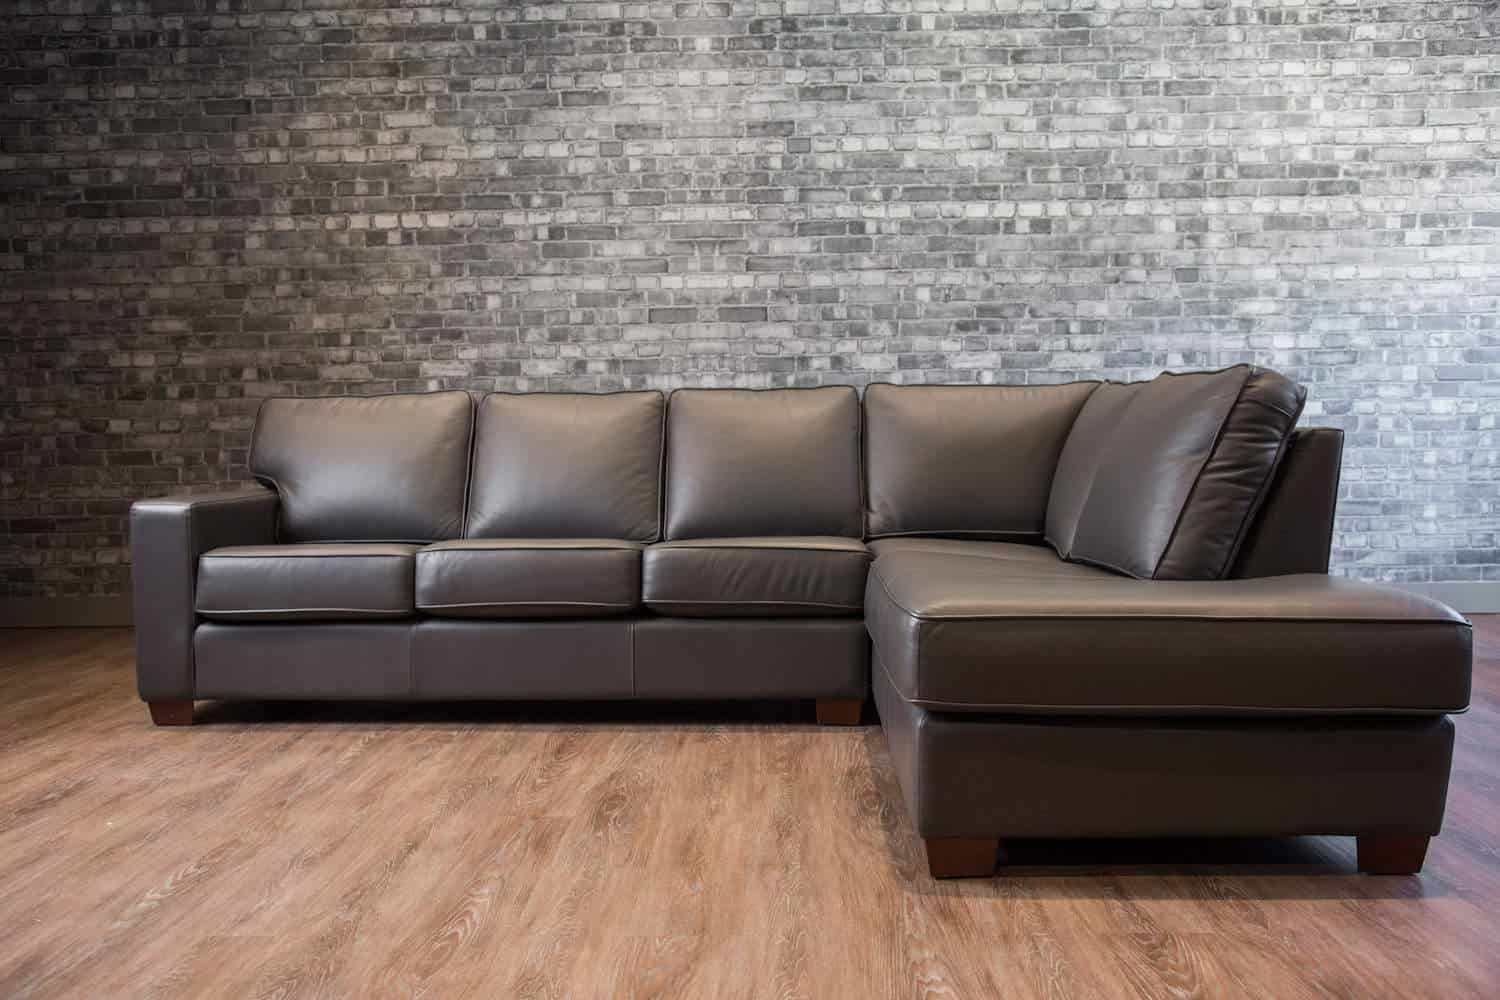 The Mesa Leather Sectional | Canada's Boss Leather Sofas And Furniture Intended For Mesa Foam 2 Piece Sectionals (Image 23 of 25)